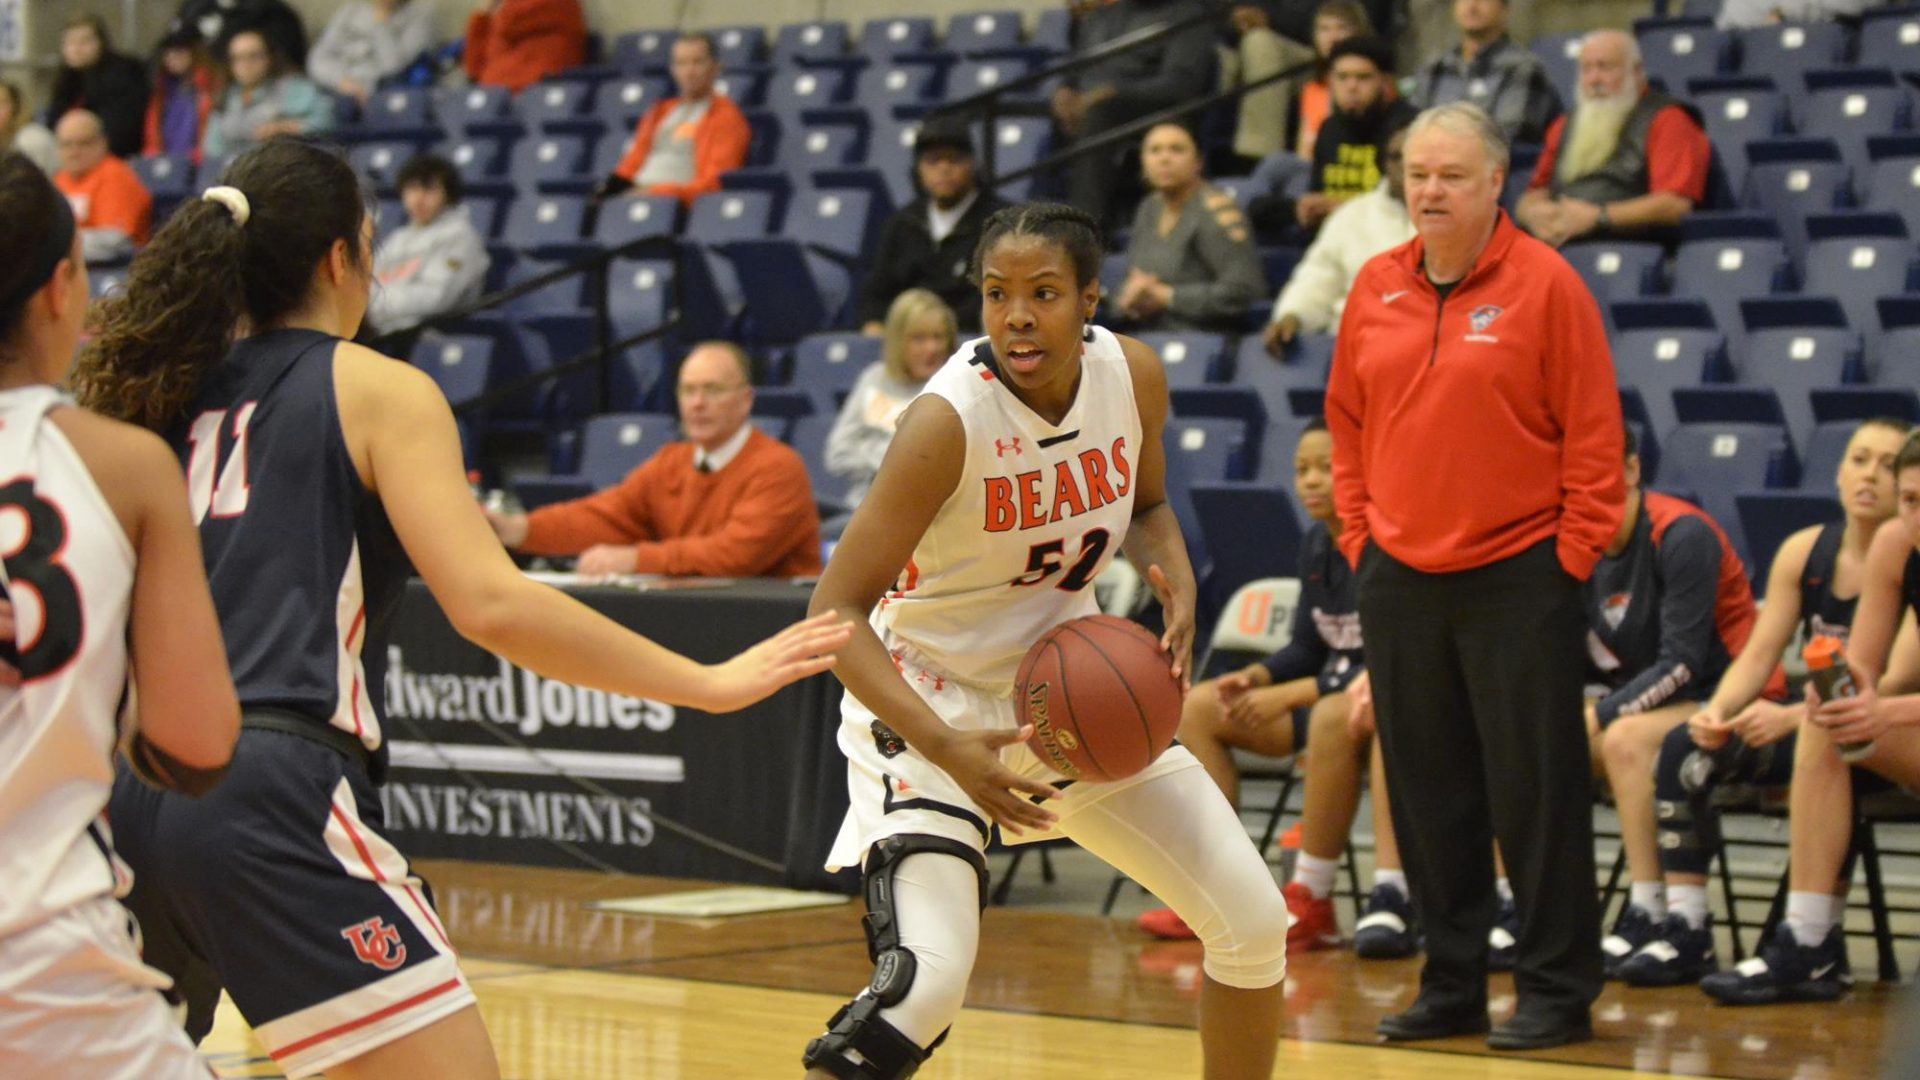 COLLEGE BASKETBALL: UPIKE women cruise past KCU